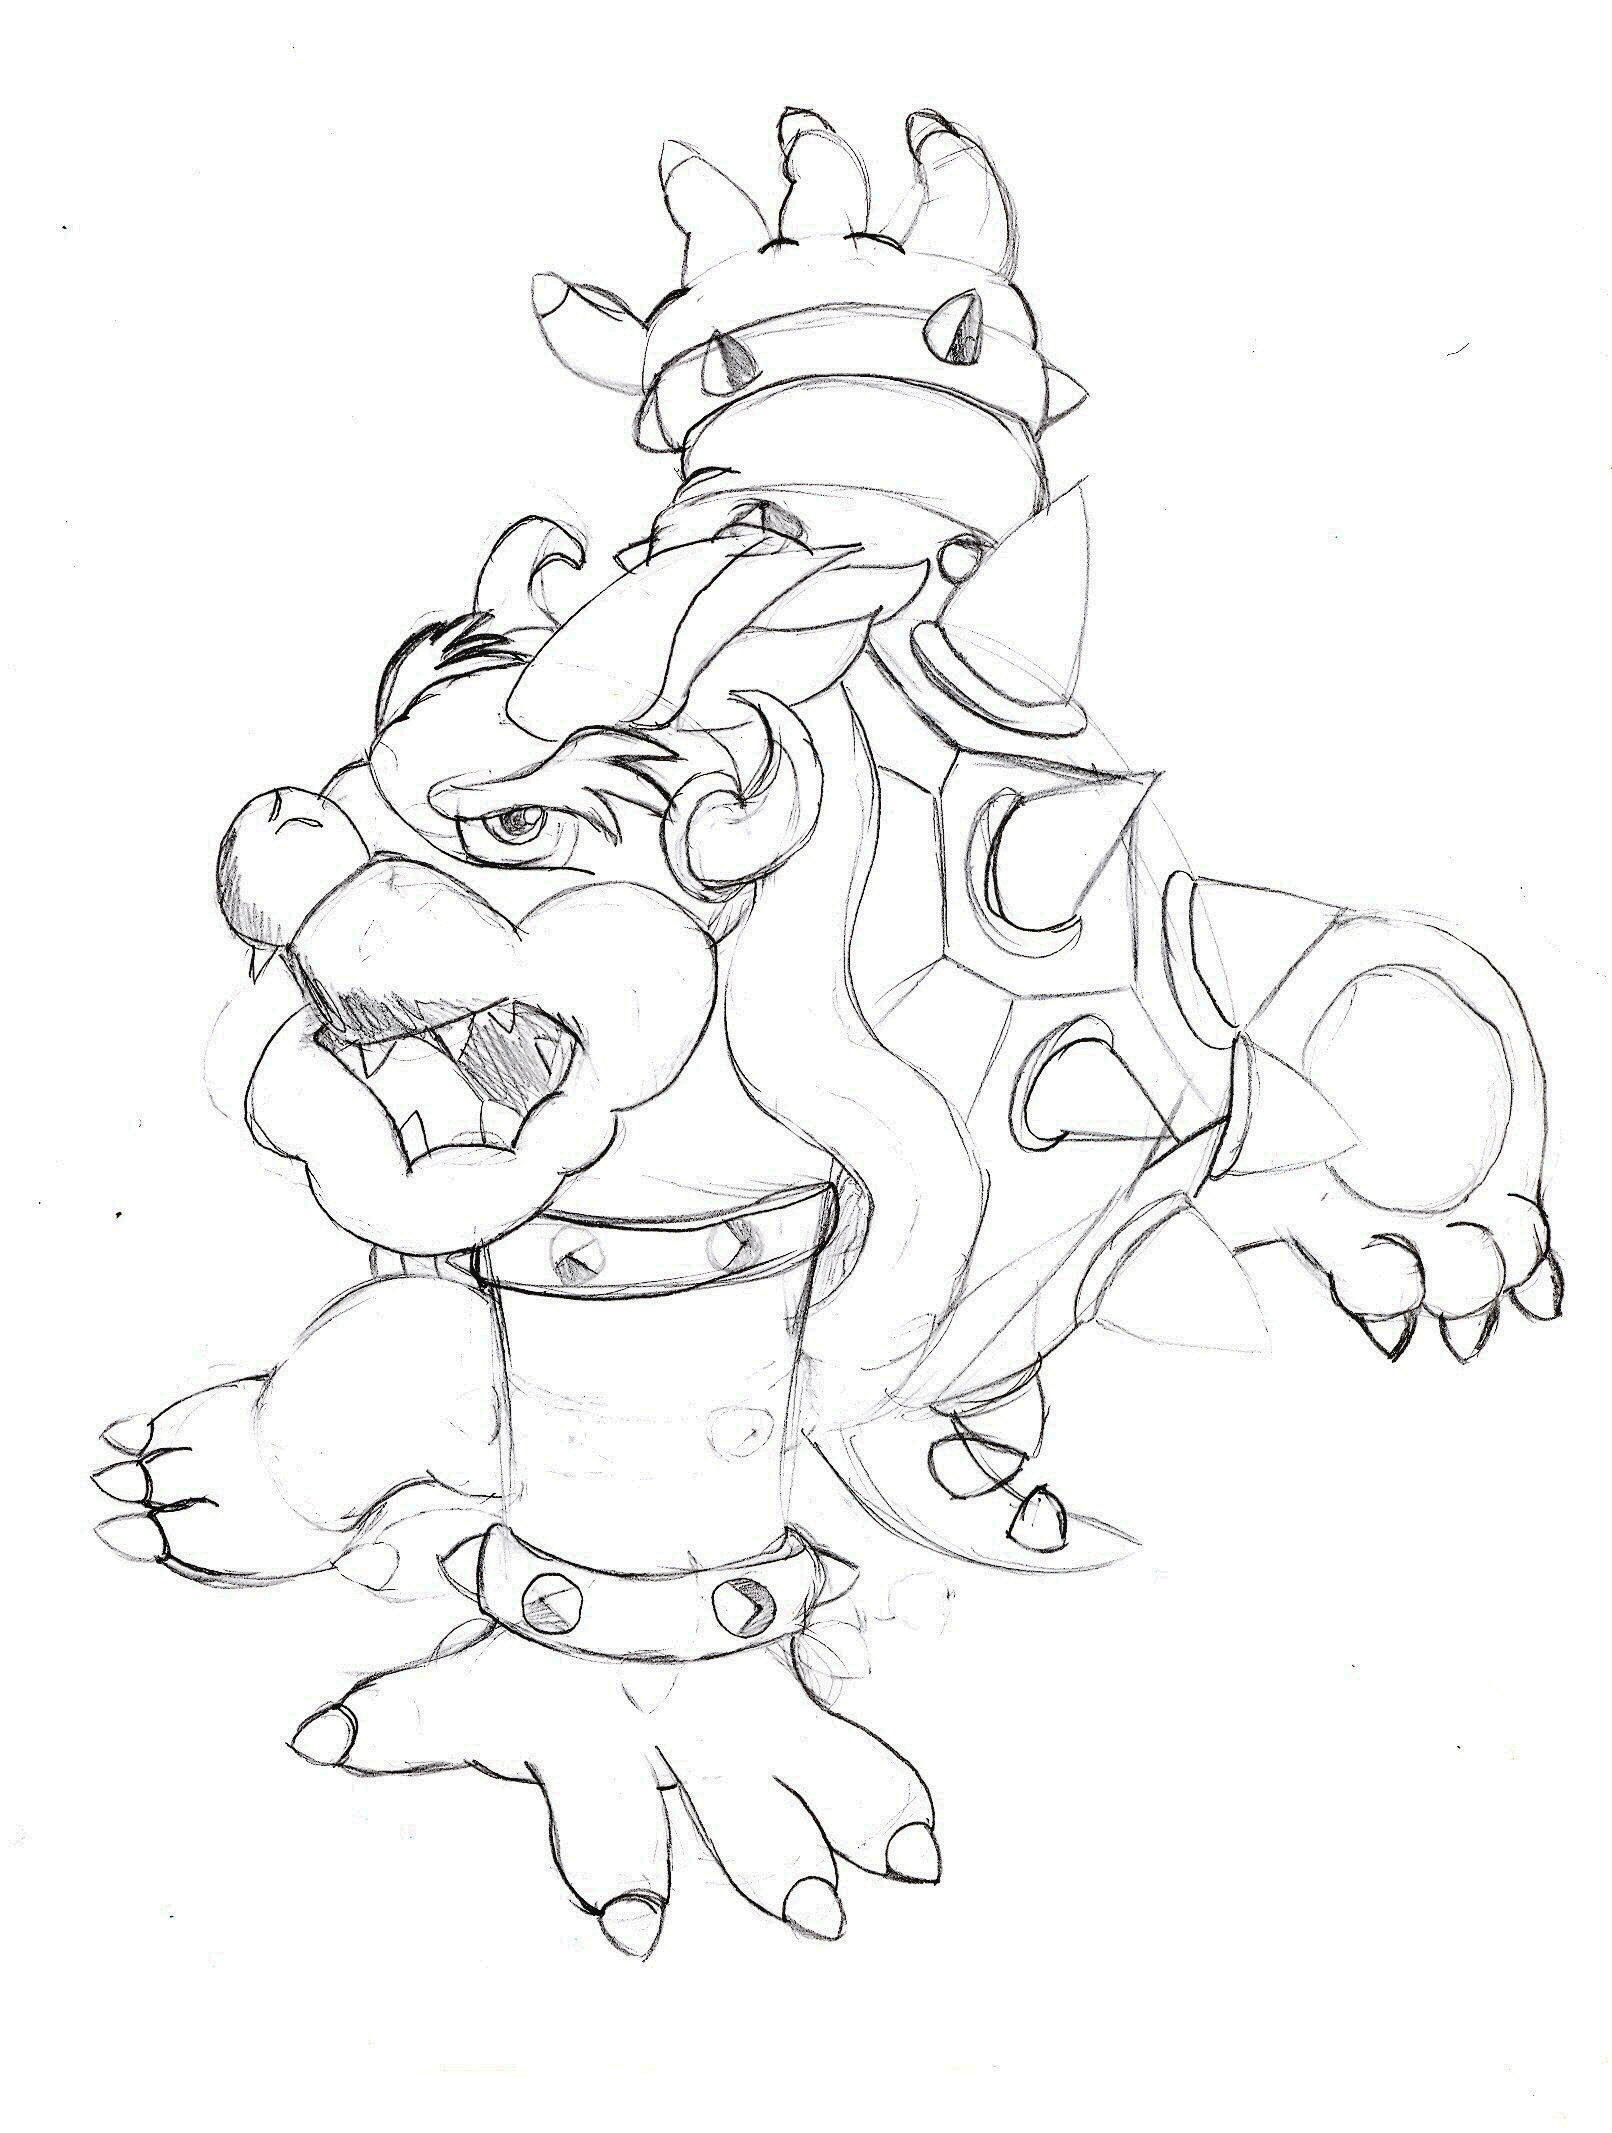 Bowser Jr Mask Coloring Page - Coloring Pages For All Ages